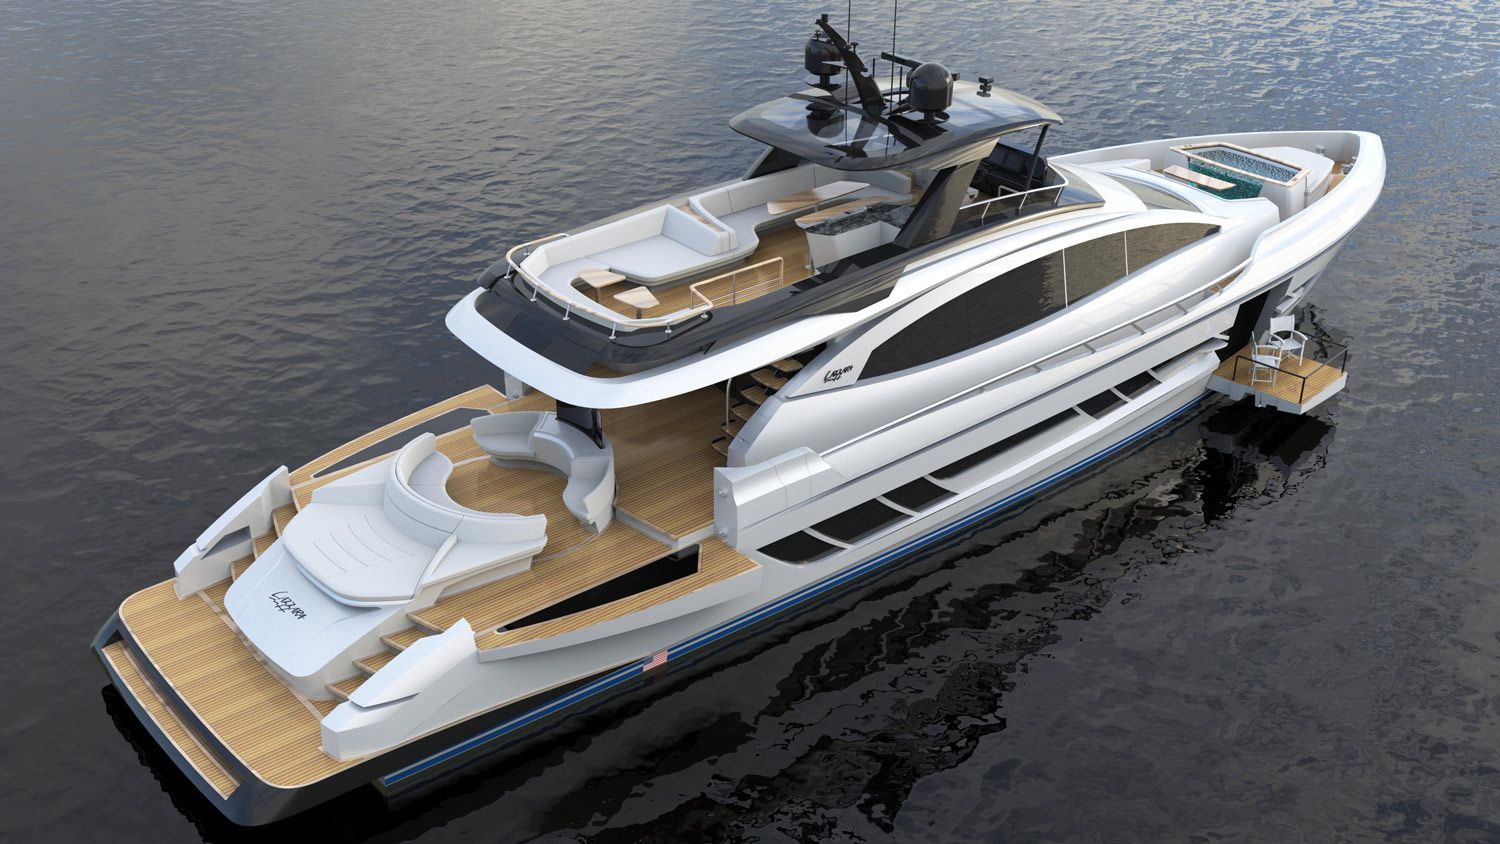 The LSY 95 is a 95-footer that can cruise at 28 knots for 450 nautical miles.